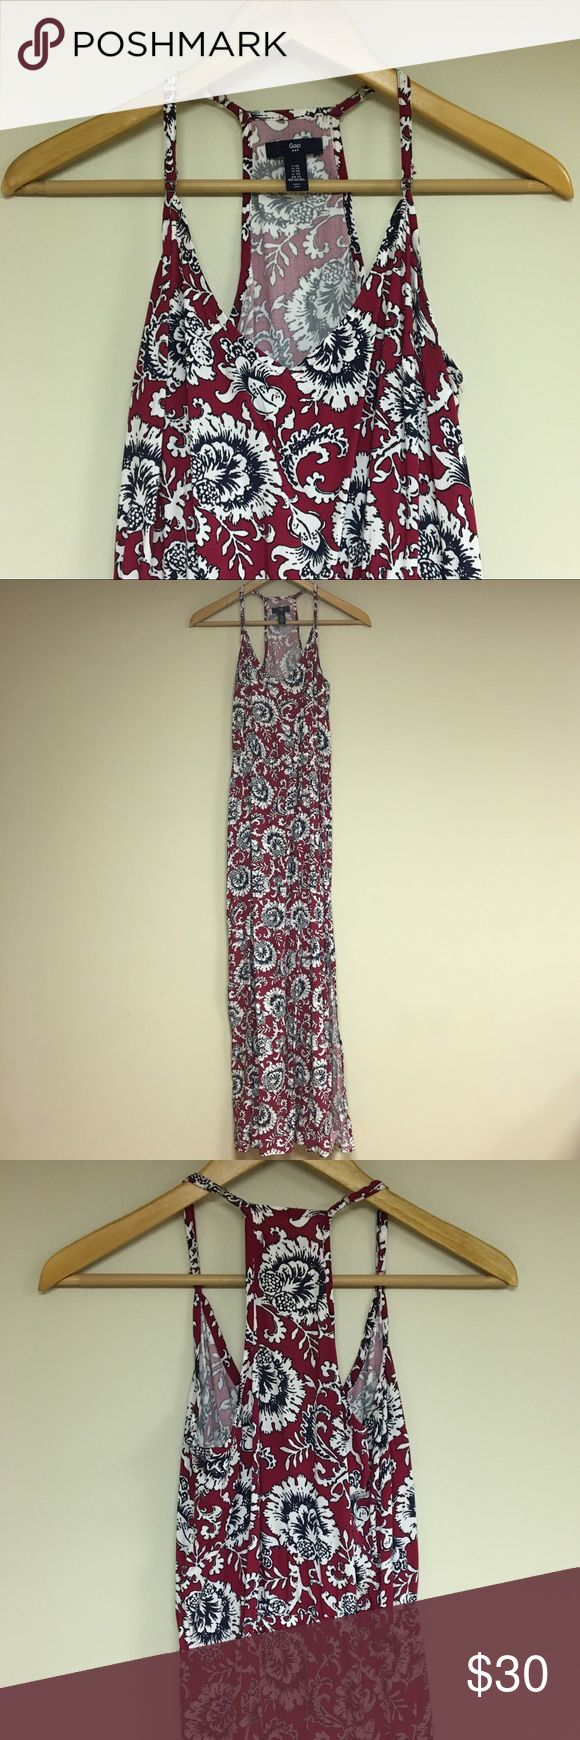 GAP Nautical Maxi Dress This red, white, and blue maxi dress is perfect for a hot summers night! There are slits on either side that is super flattering! GAP Dresses Maxi